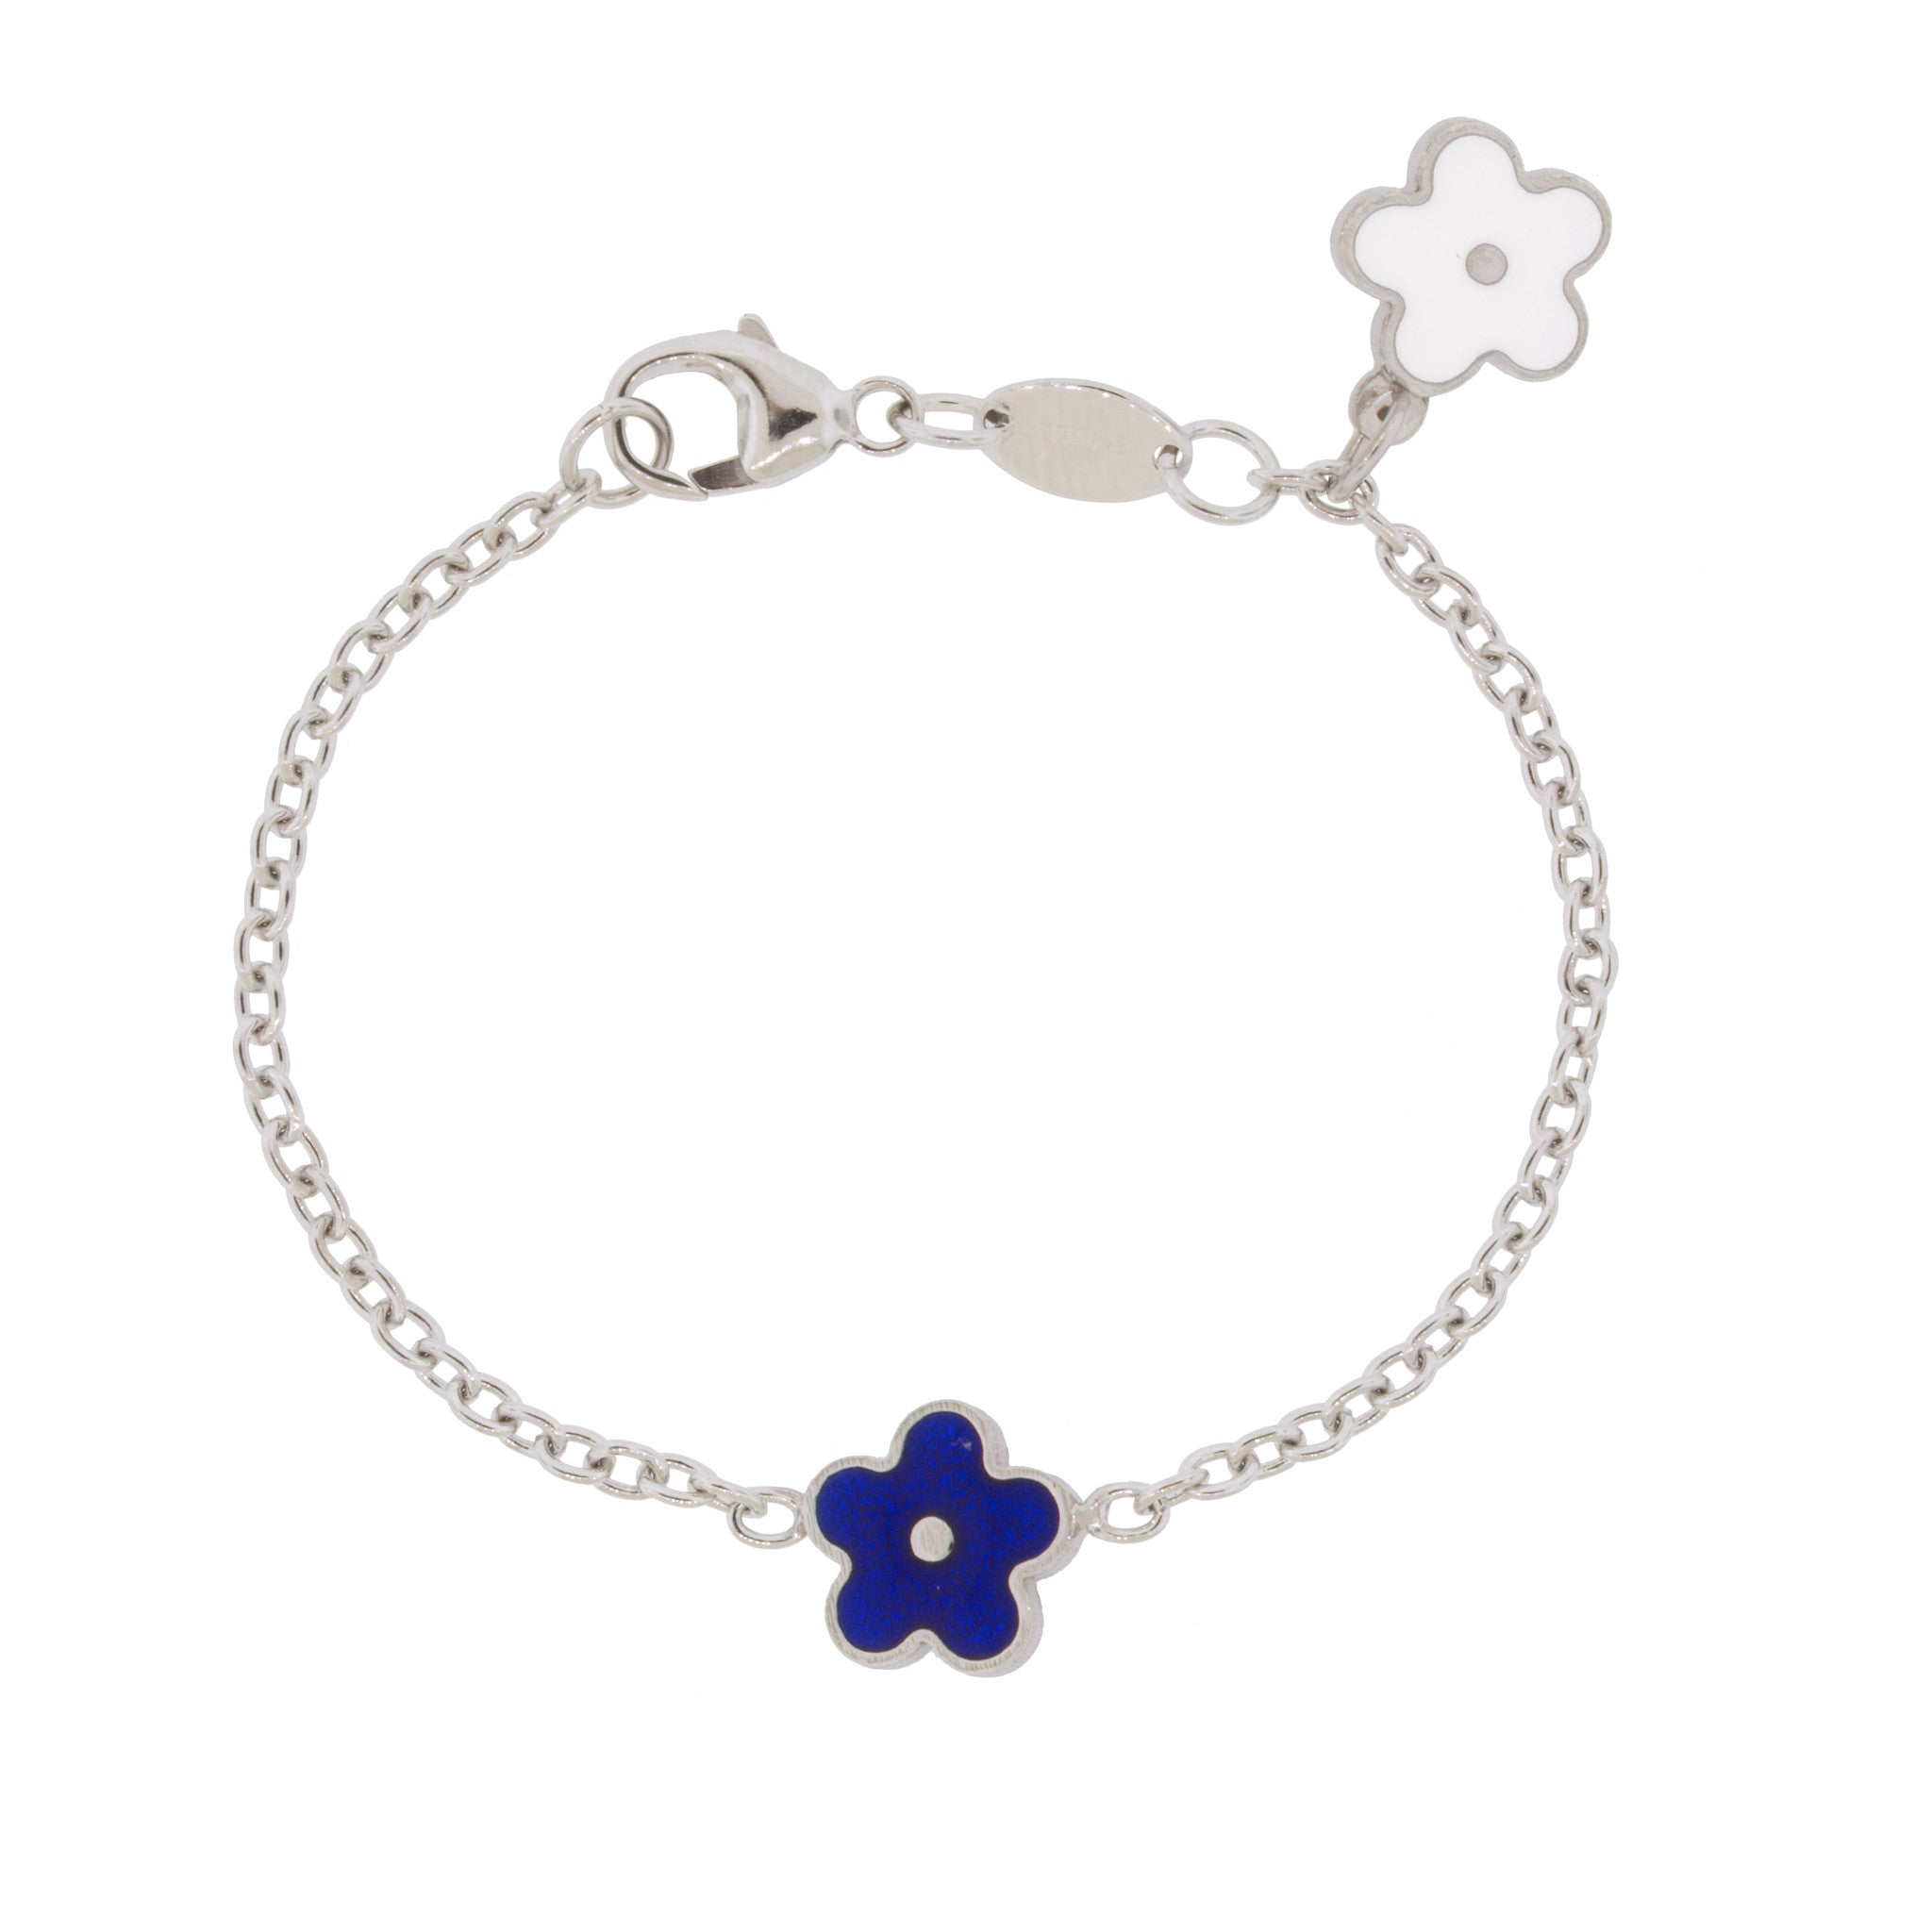 flowers front the smell charm charms products bracelet jewellery jemulet sterling silver